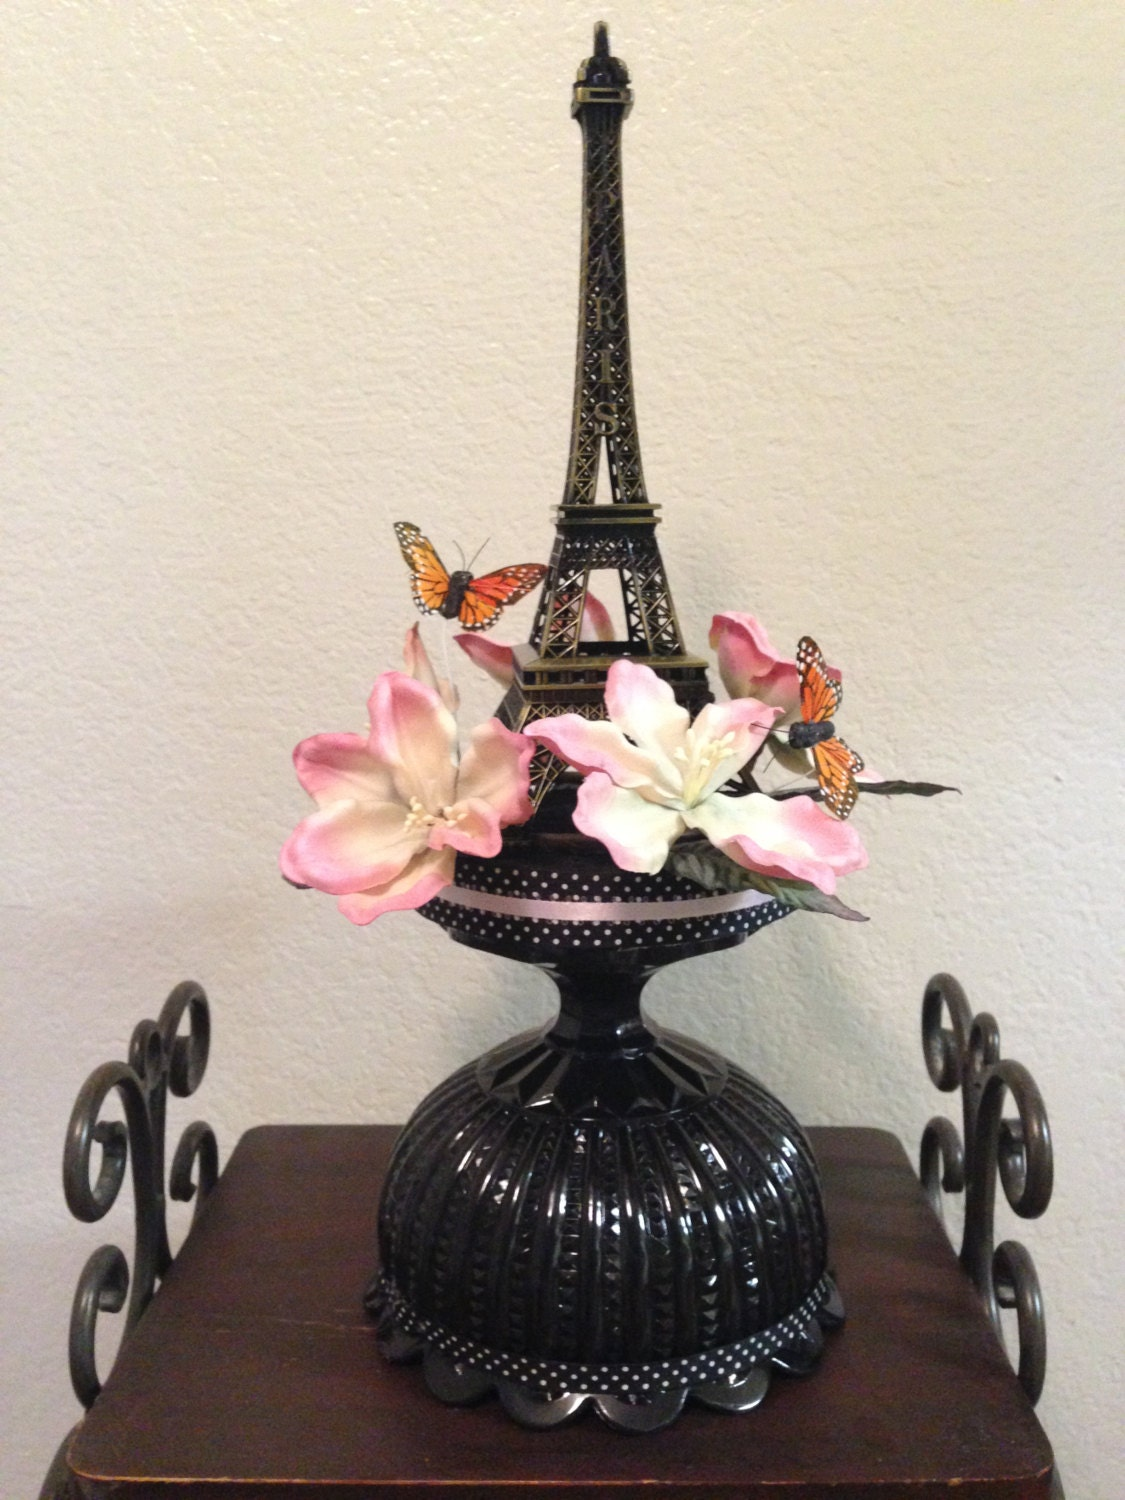 Eiffel Tower Centerpiece With Butterflies And Flowers For A